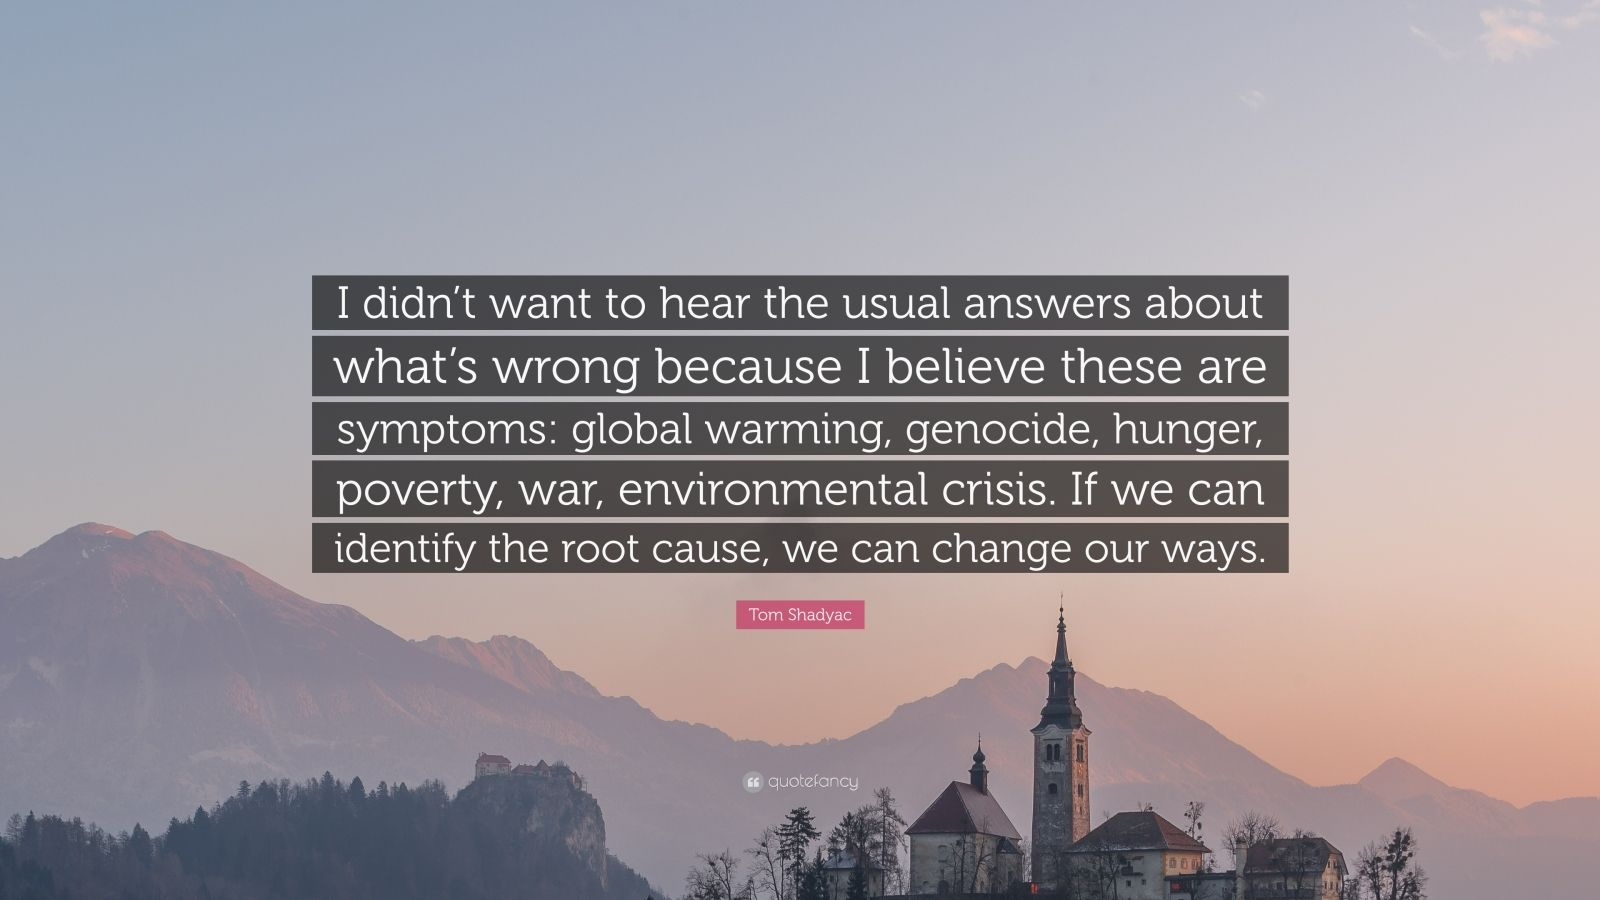 """Tom Shadyac Quote: """"I didn't want to hear the usual answers about what's wrong because I believe these are symptoms: global warming, genocide, hunger, poverty, war, environmental crisis. If we can identify the root cause, we can change our ways."""""""